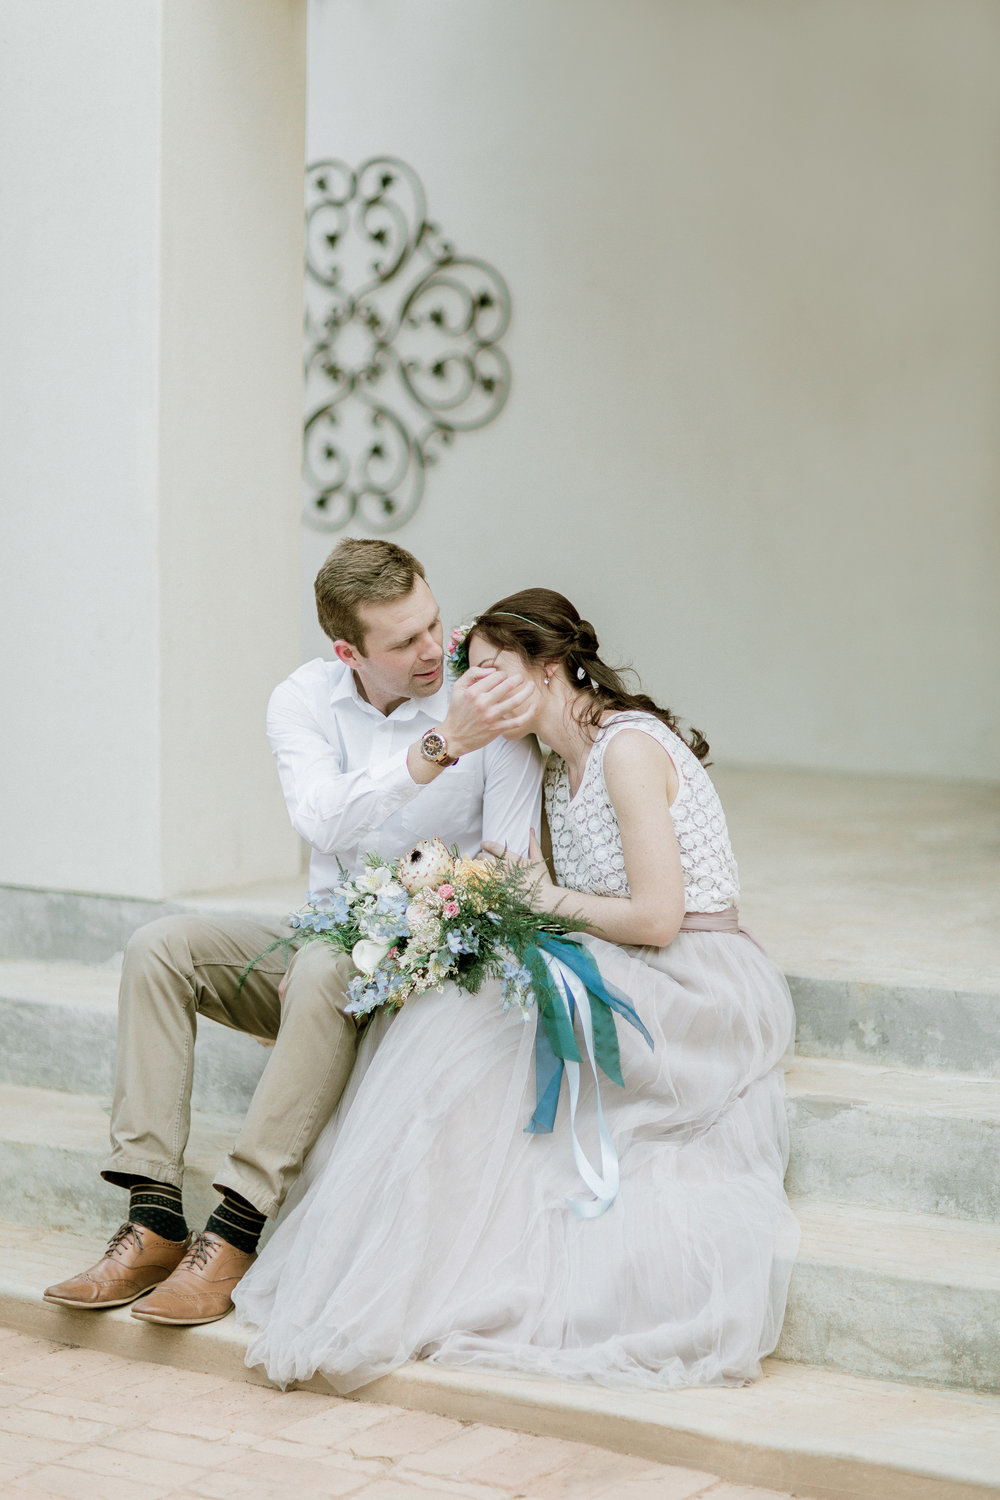 South africa wedding photographer clareece smit photography21.jpg